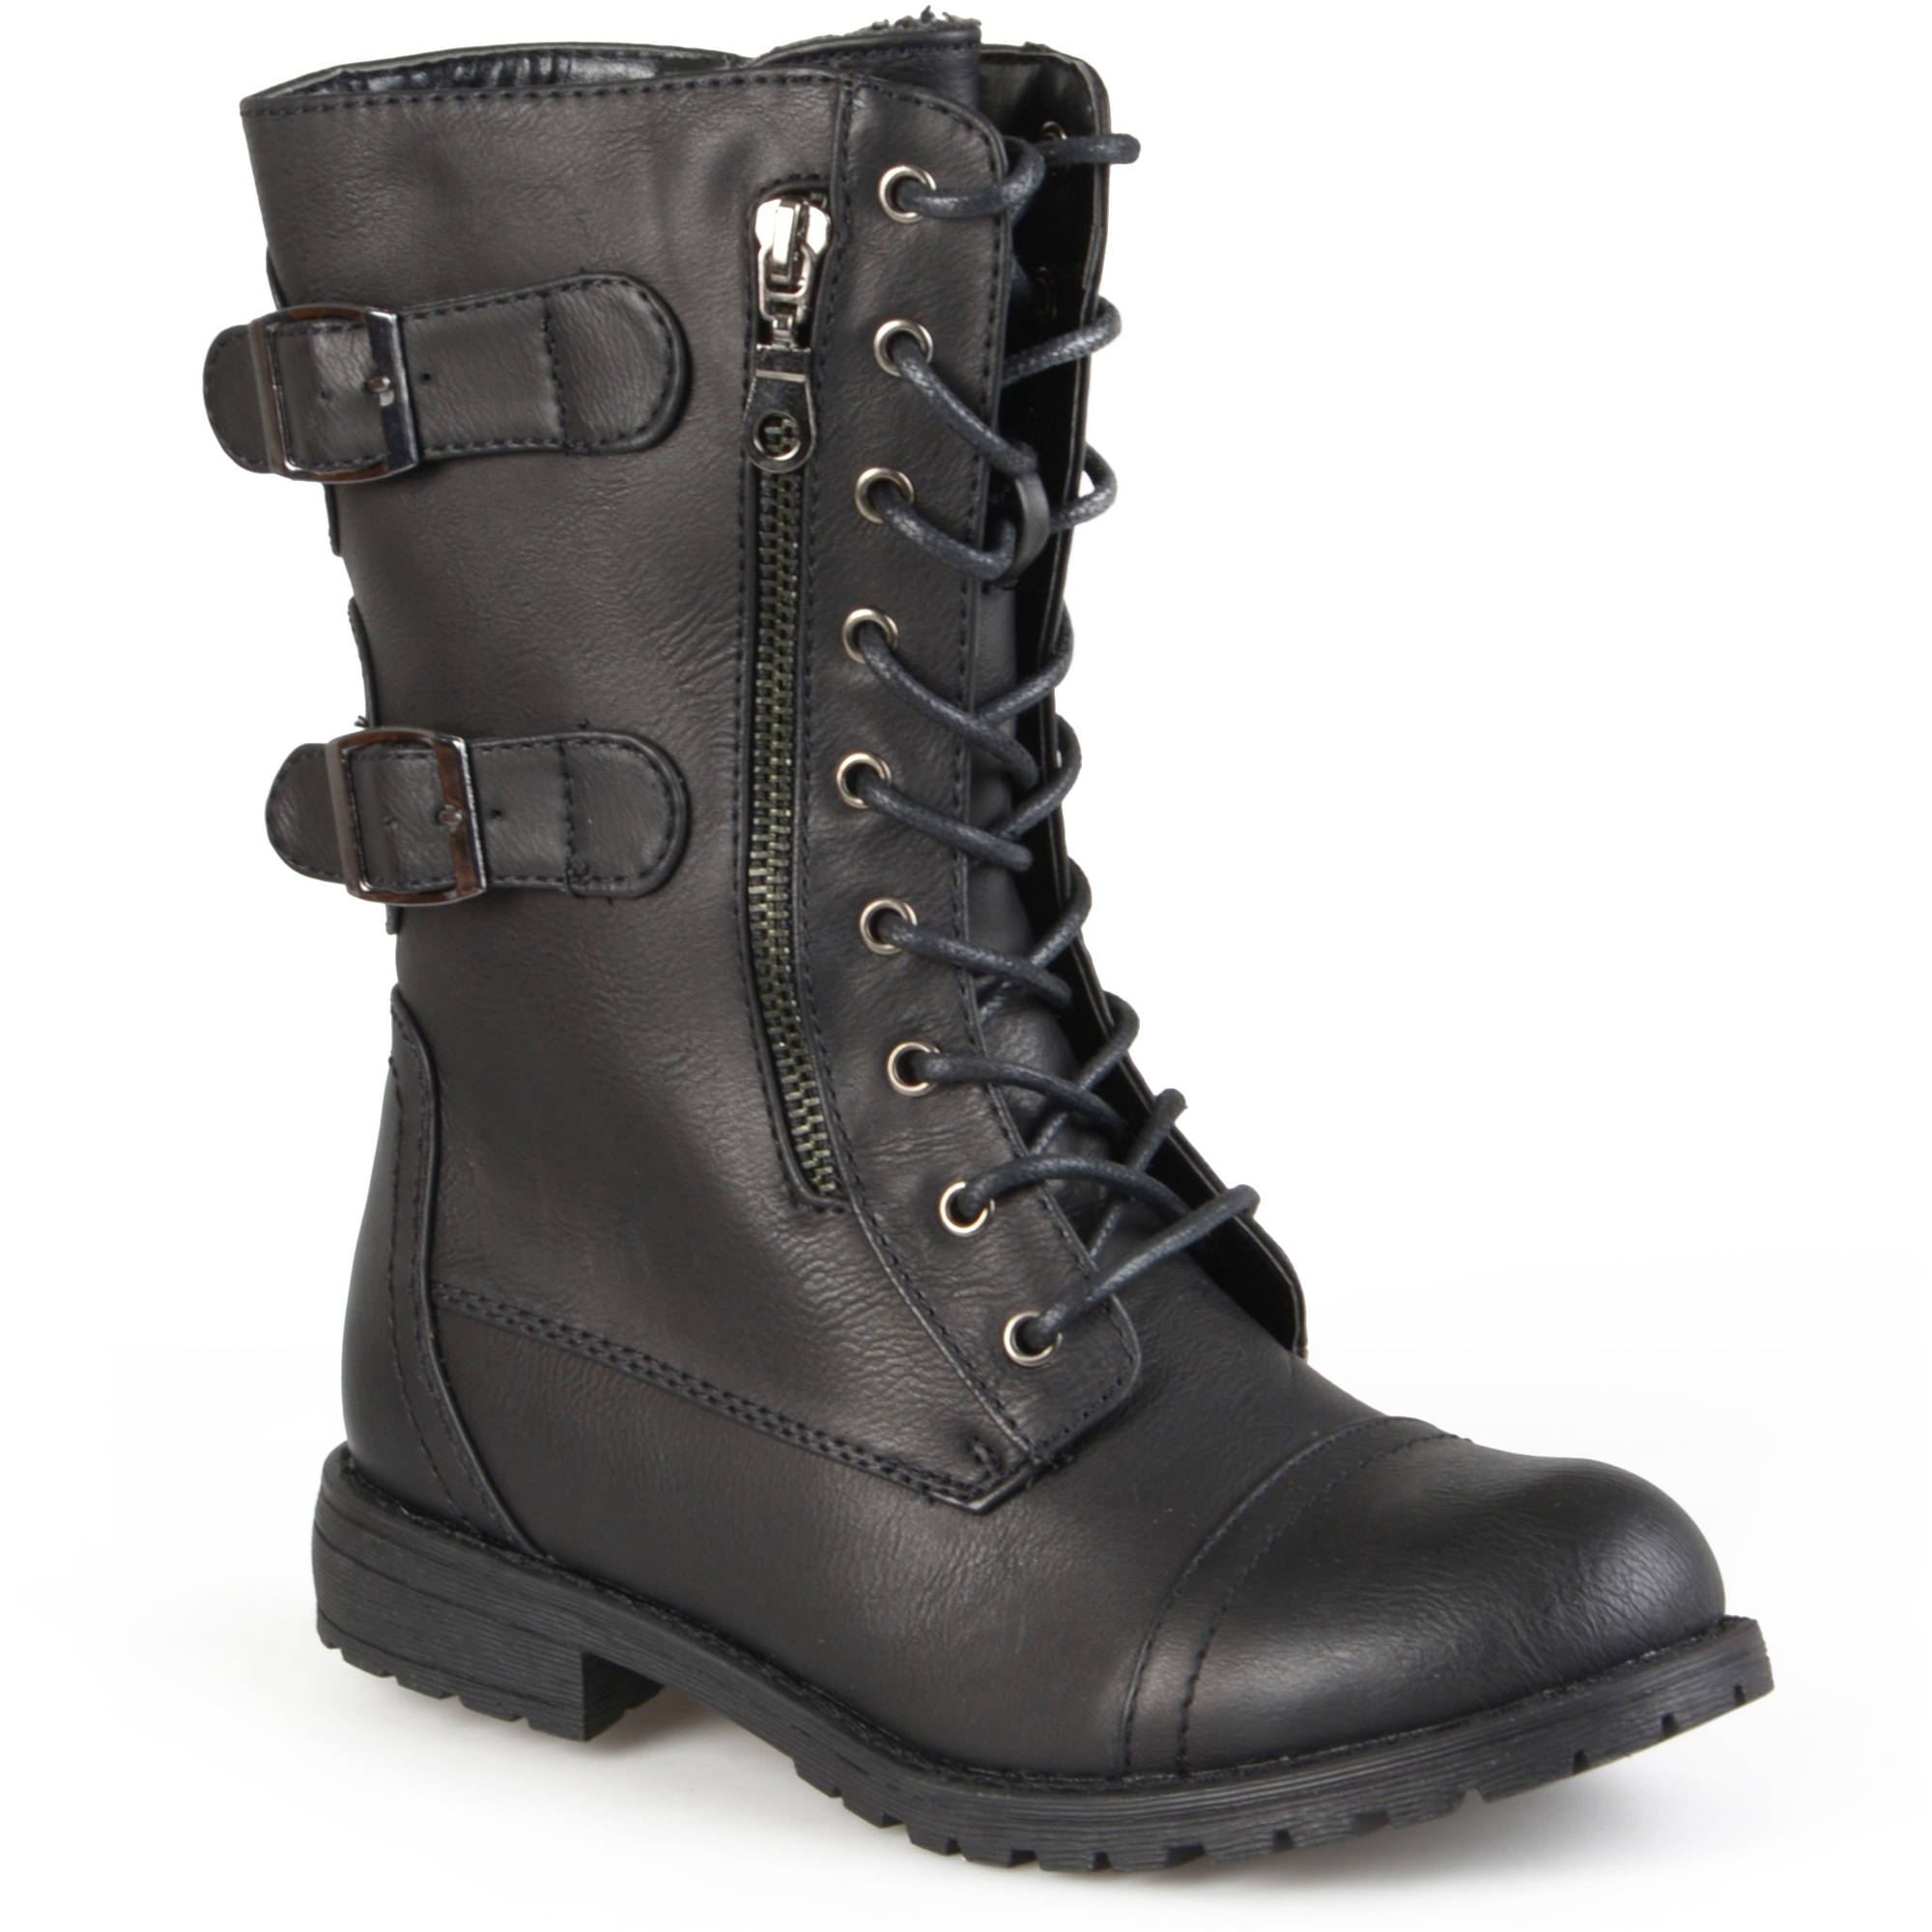 Brinley Co Womens Buckle Detail Lace-up Boots - Walmart.com